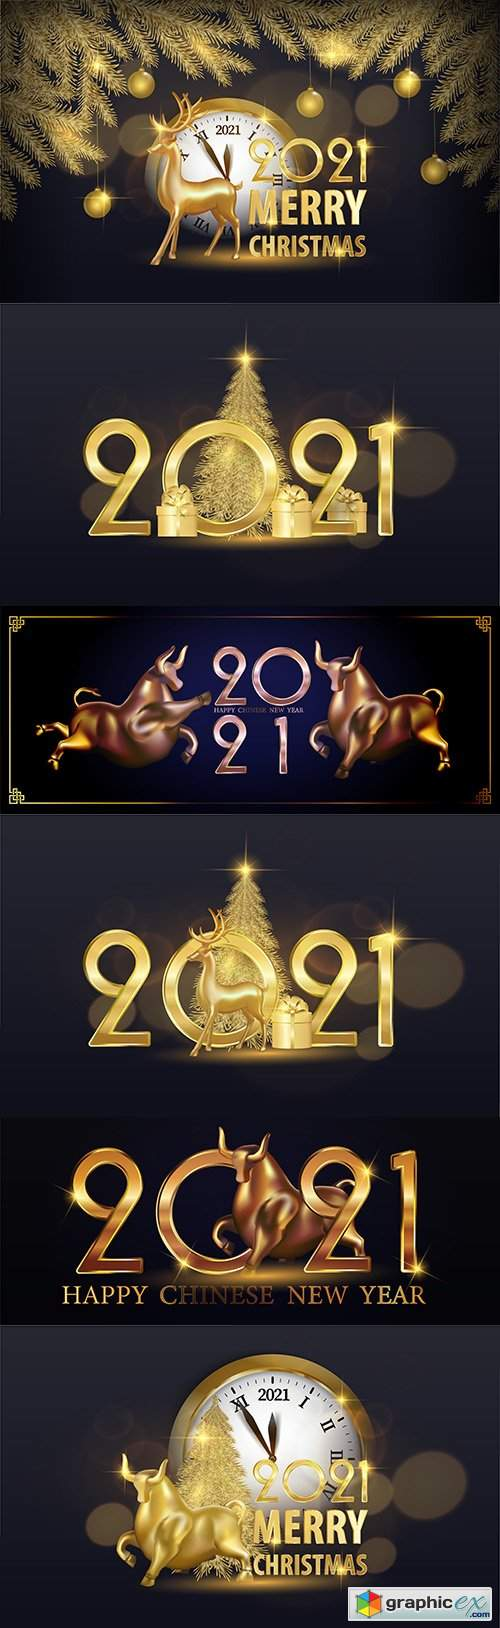 Festive design inscription 2021 New Year's illustrations